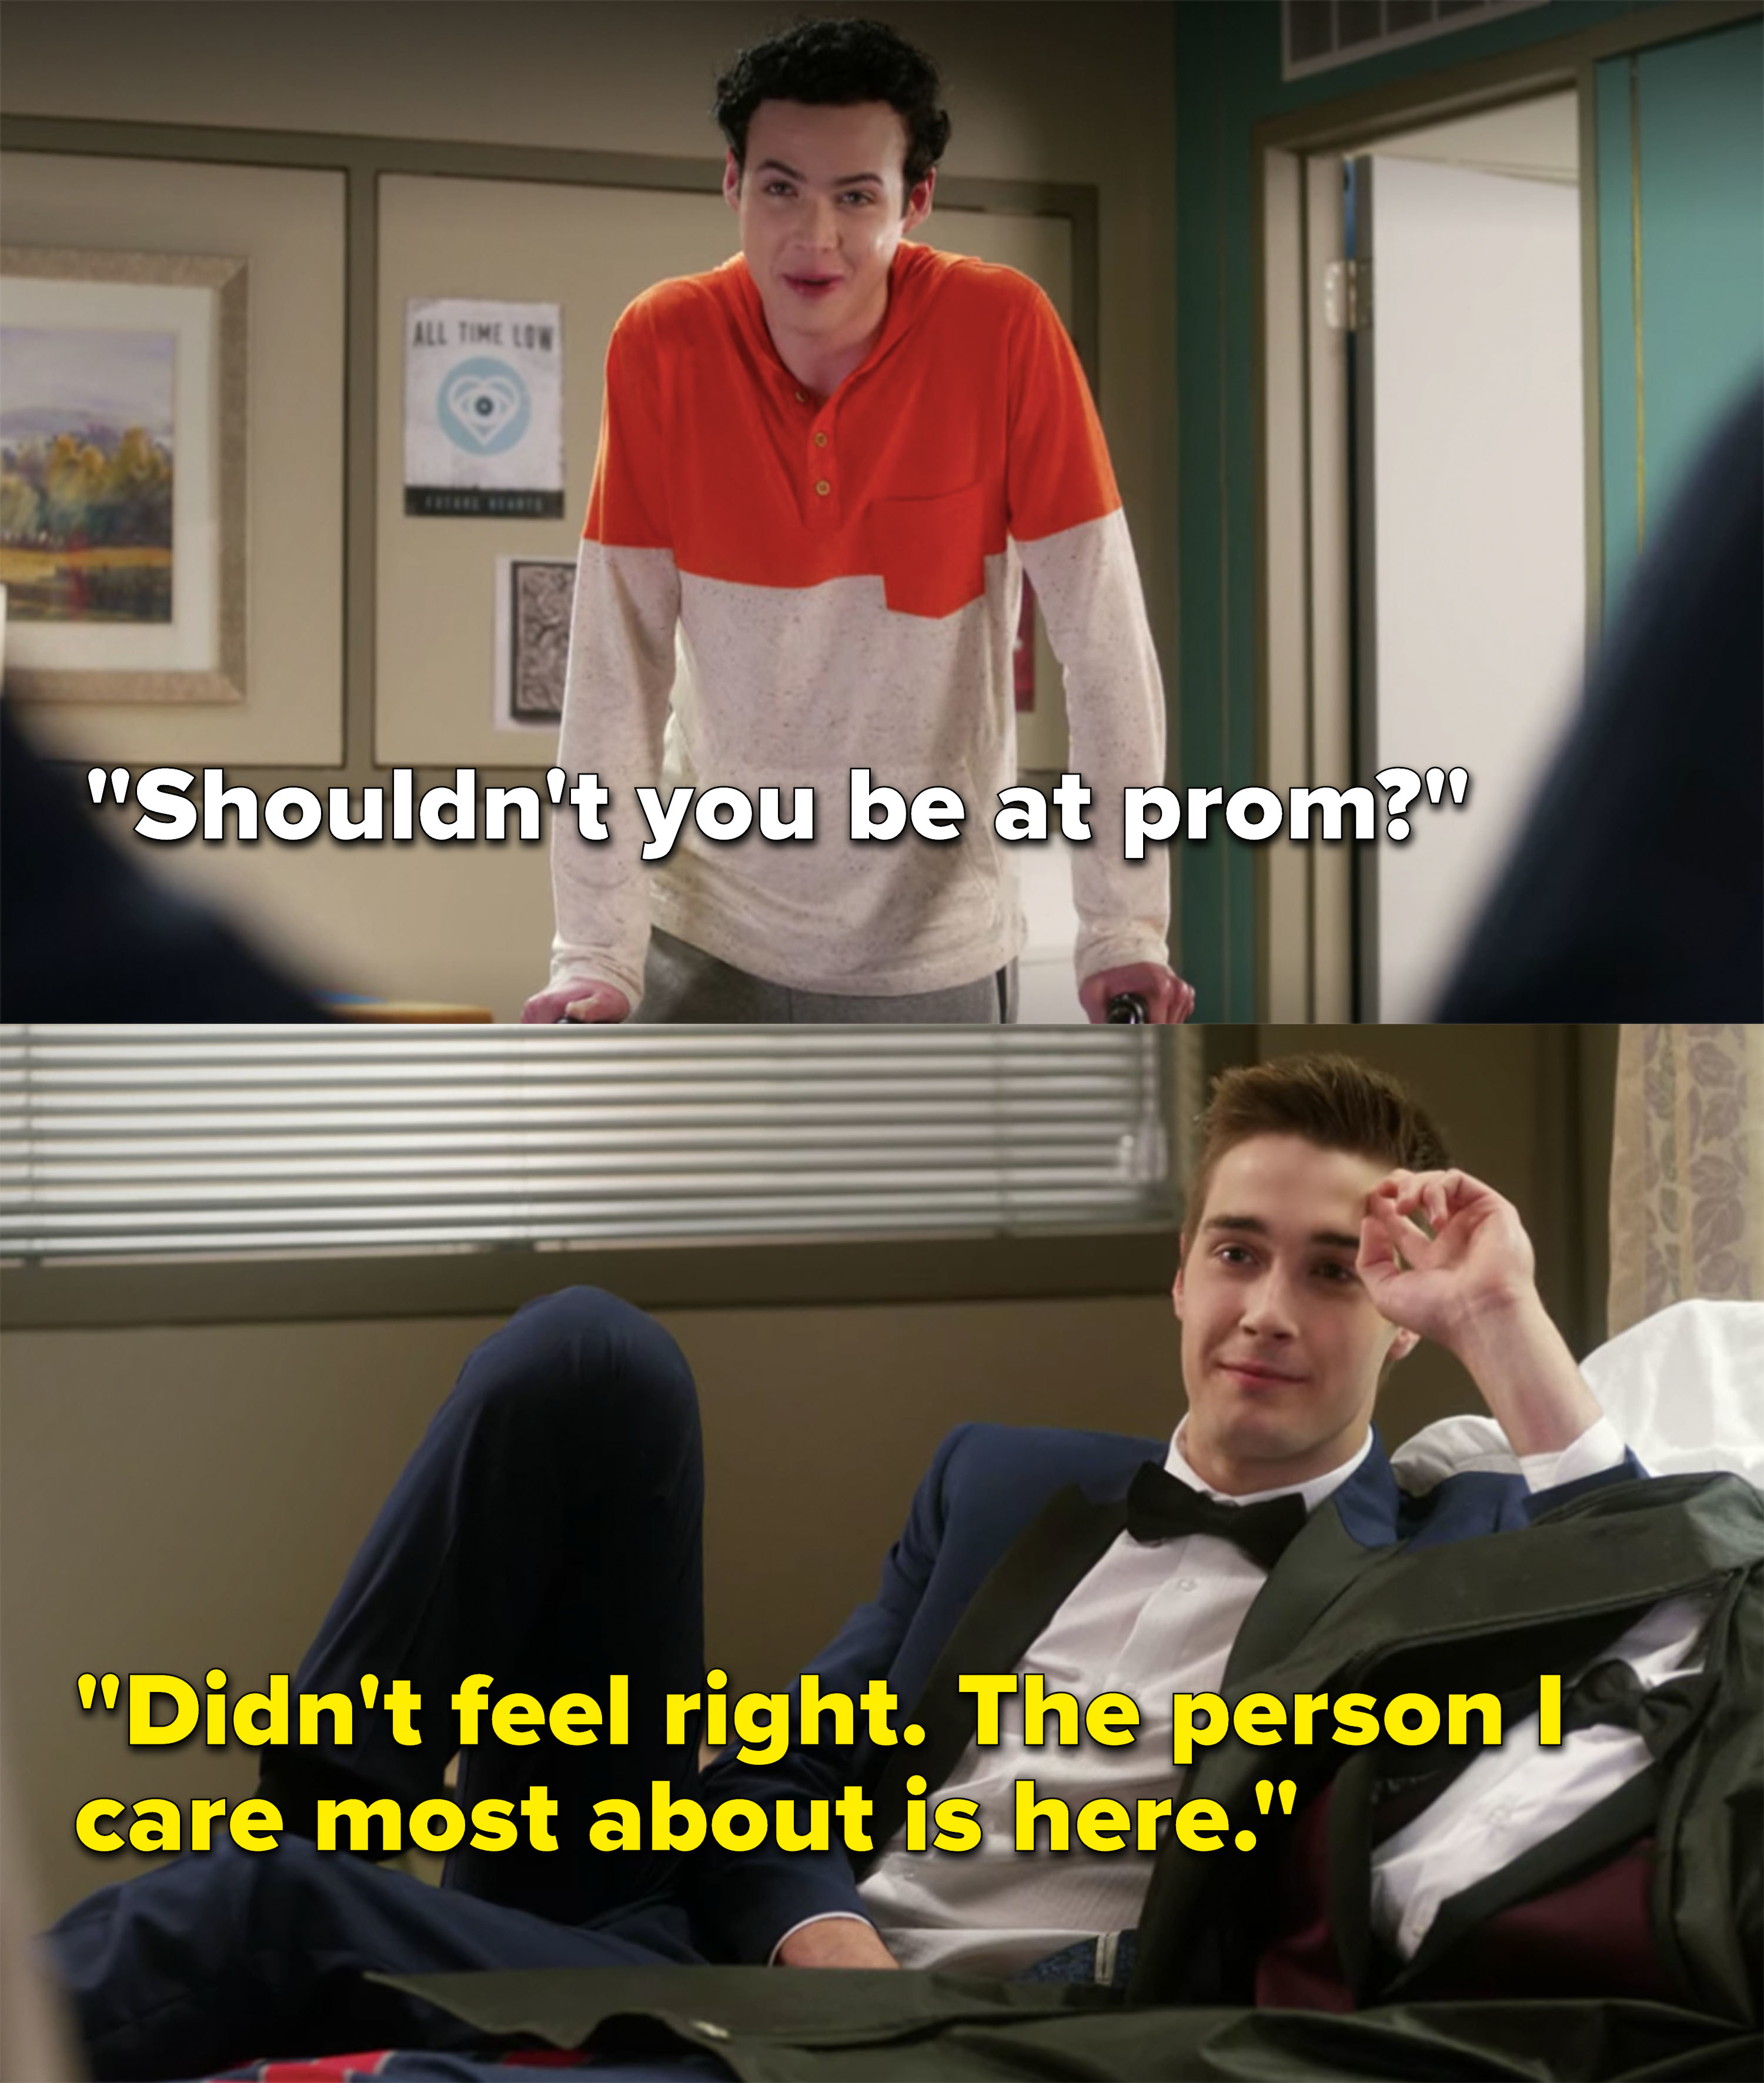 Miles tells Tristan it didn't feel right being at prom without him